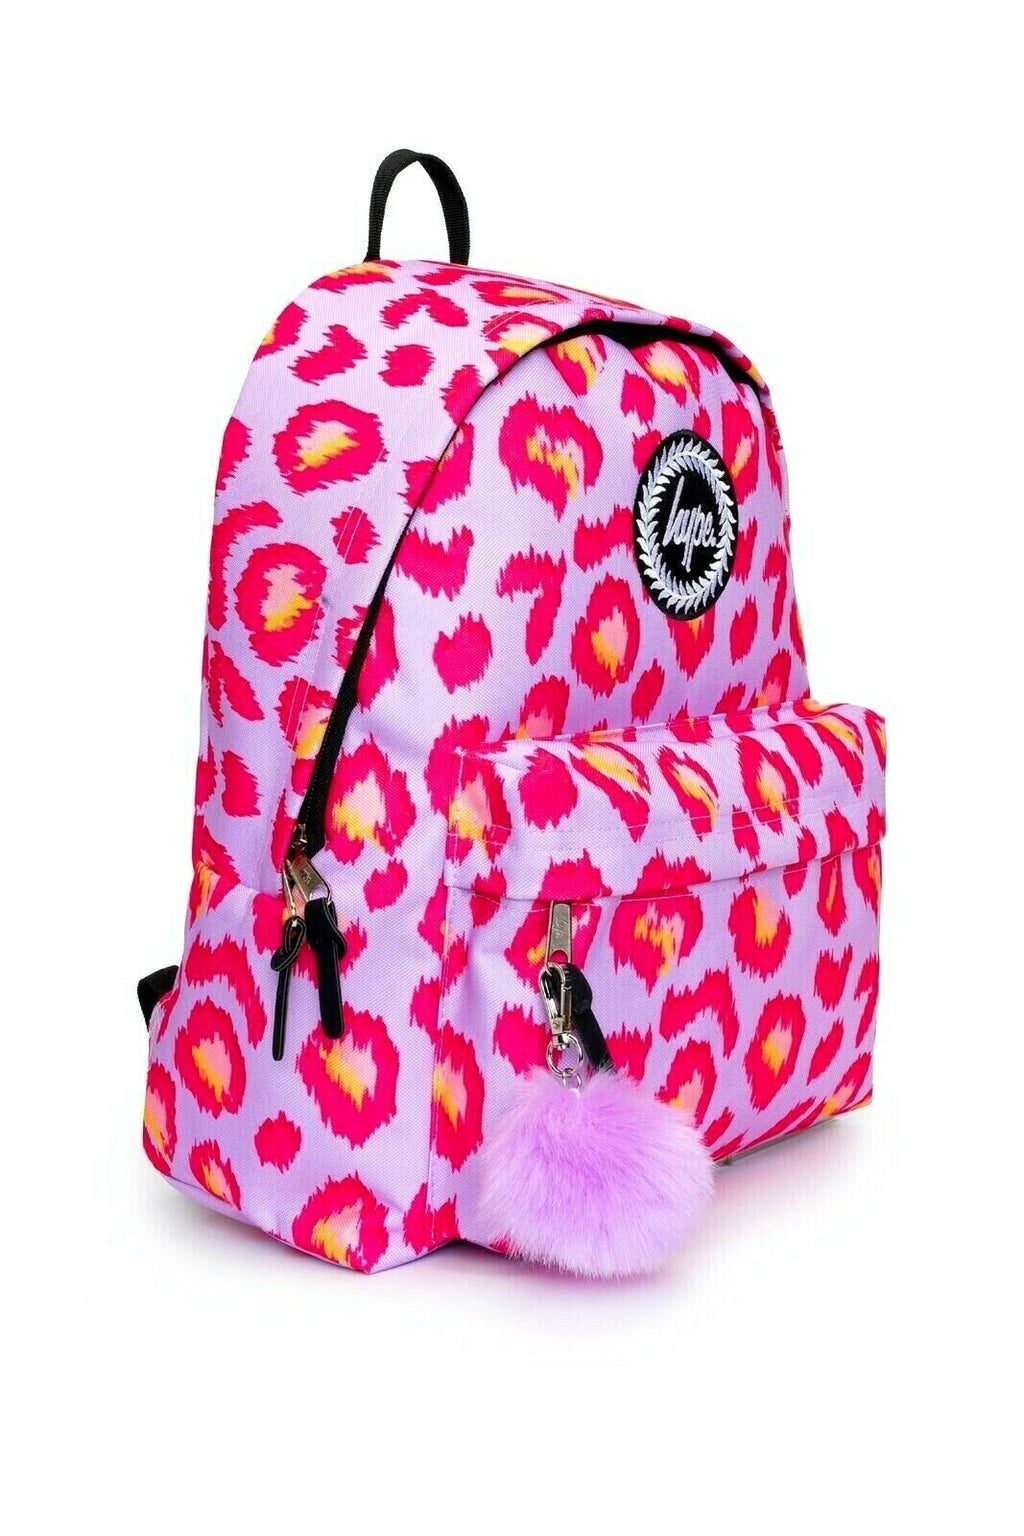 Party Leopard Backpack